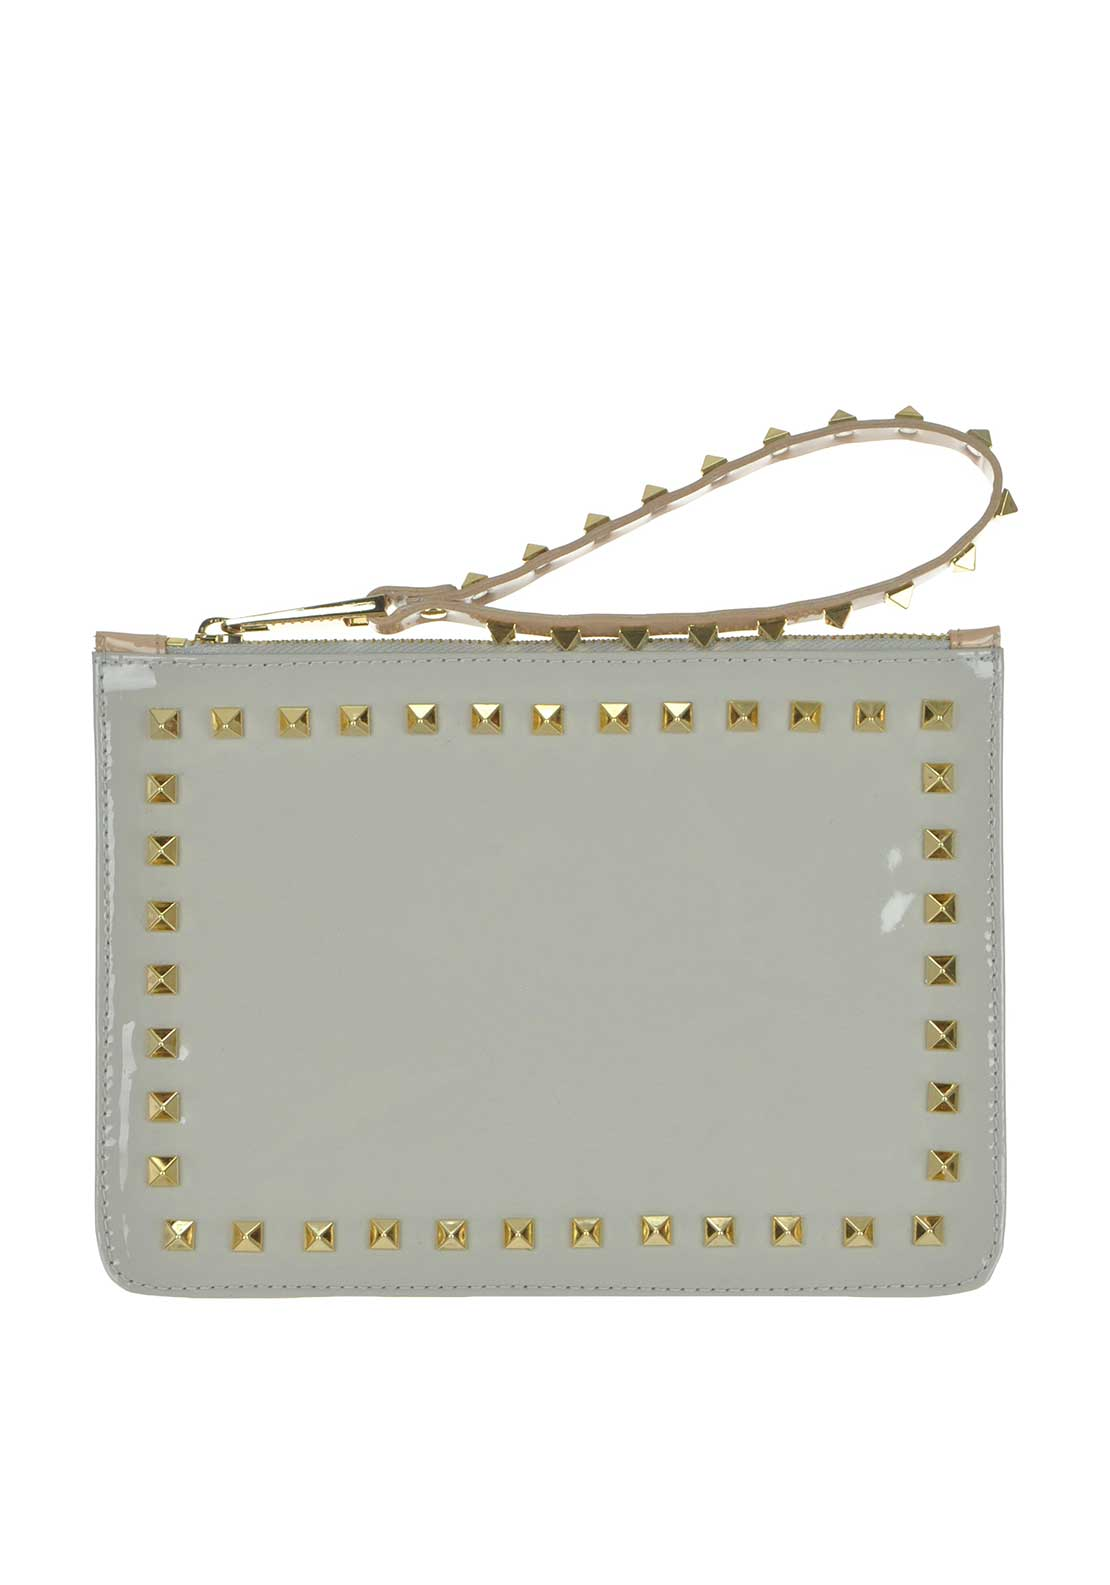 McElhinney's by Lodi Valver Leather Patent Studded Clutch Bag, Grey and Nude